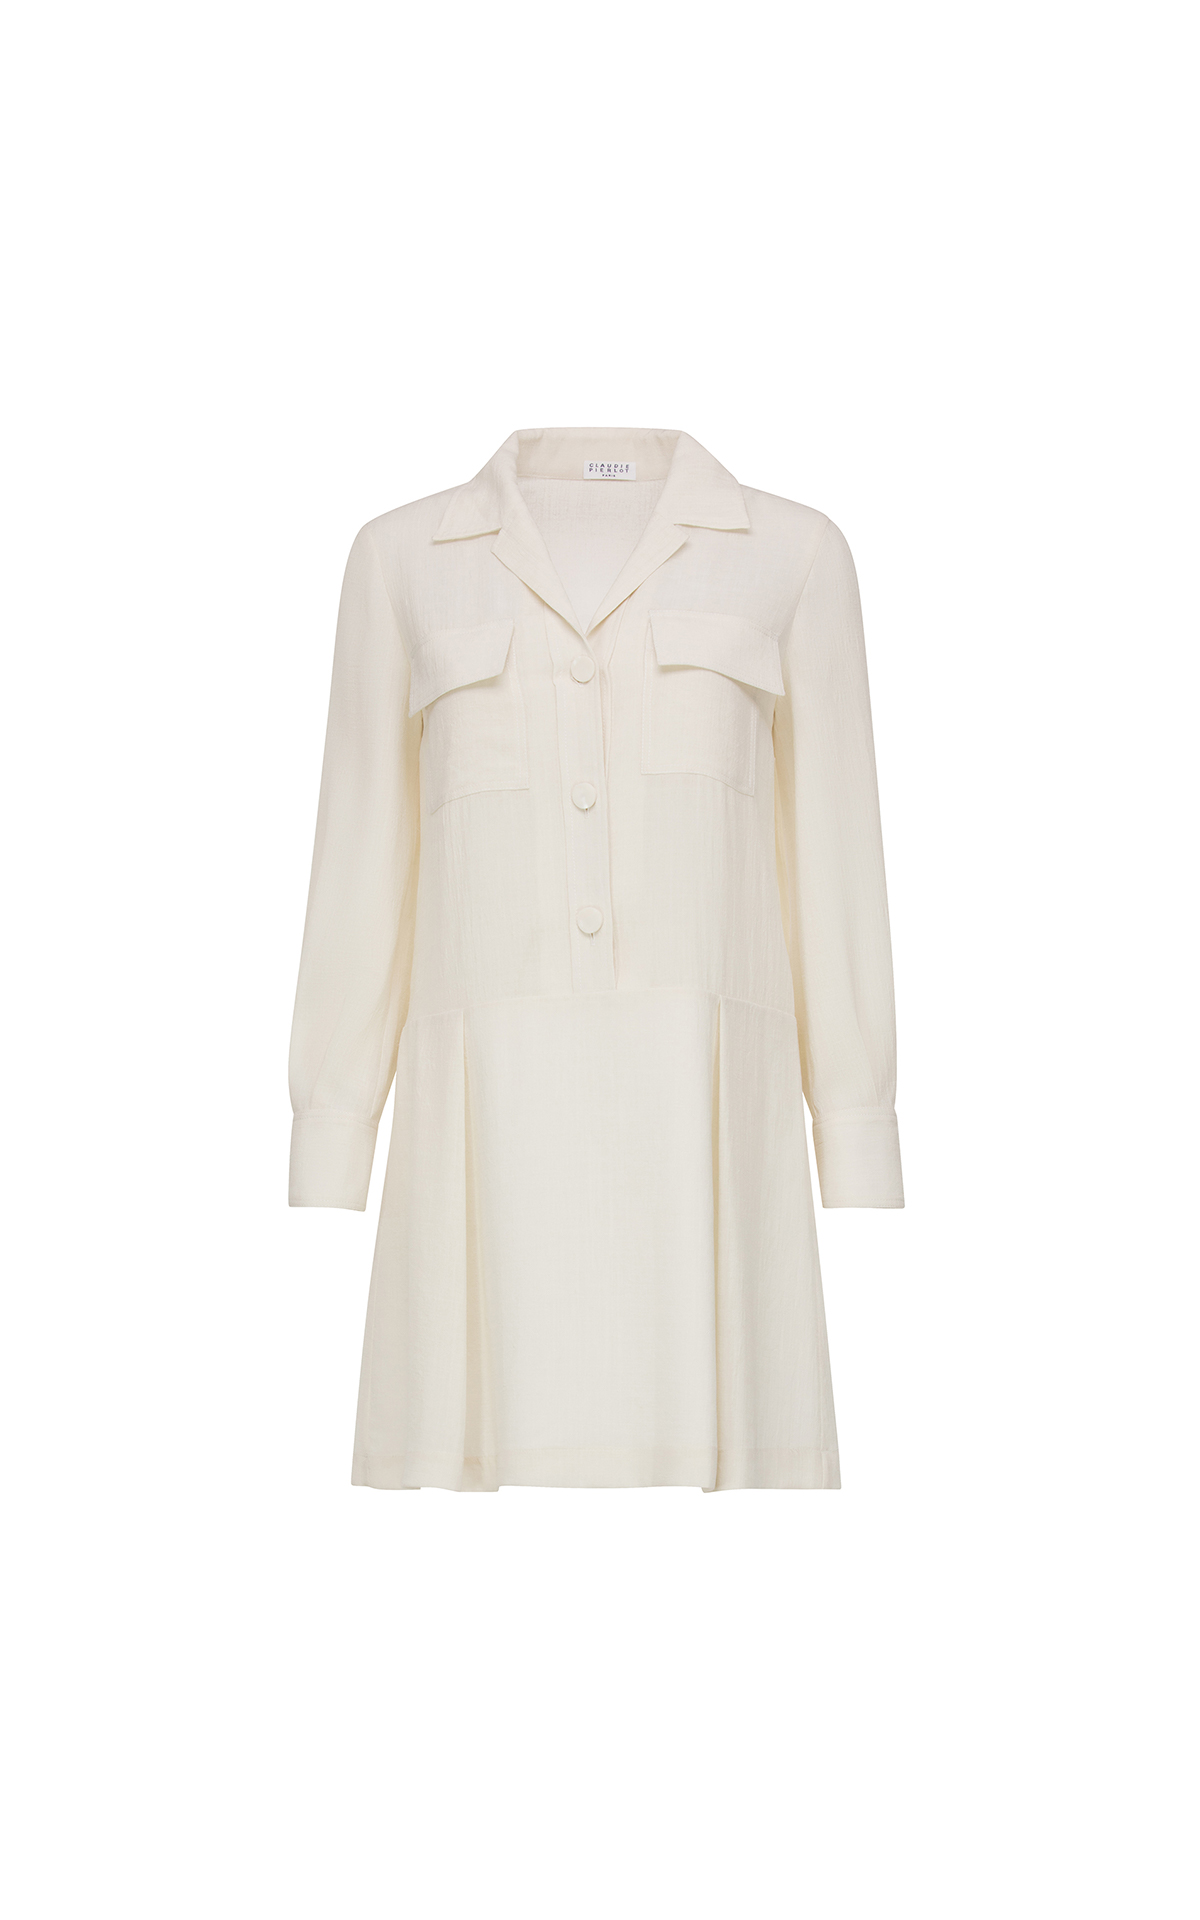 Claudie Pierlot Rable dress in Ivory at The Bicester Village Shopping Collection